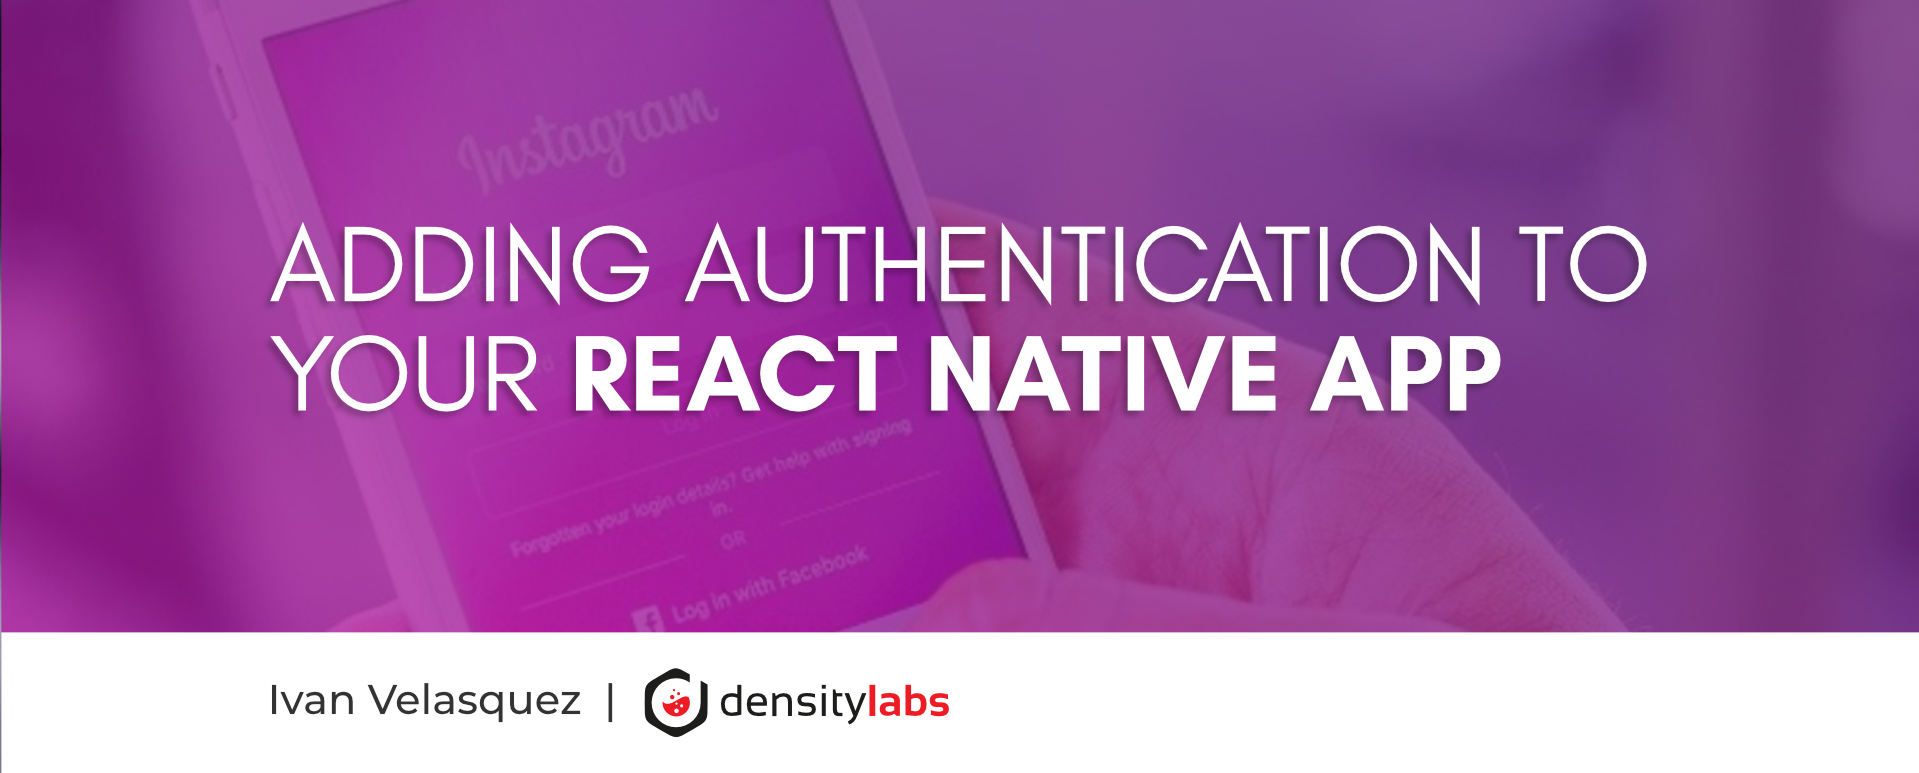 Adding authentication to your react native app